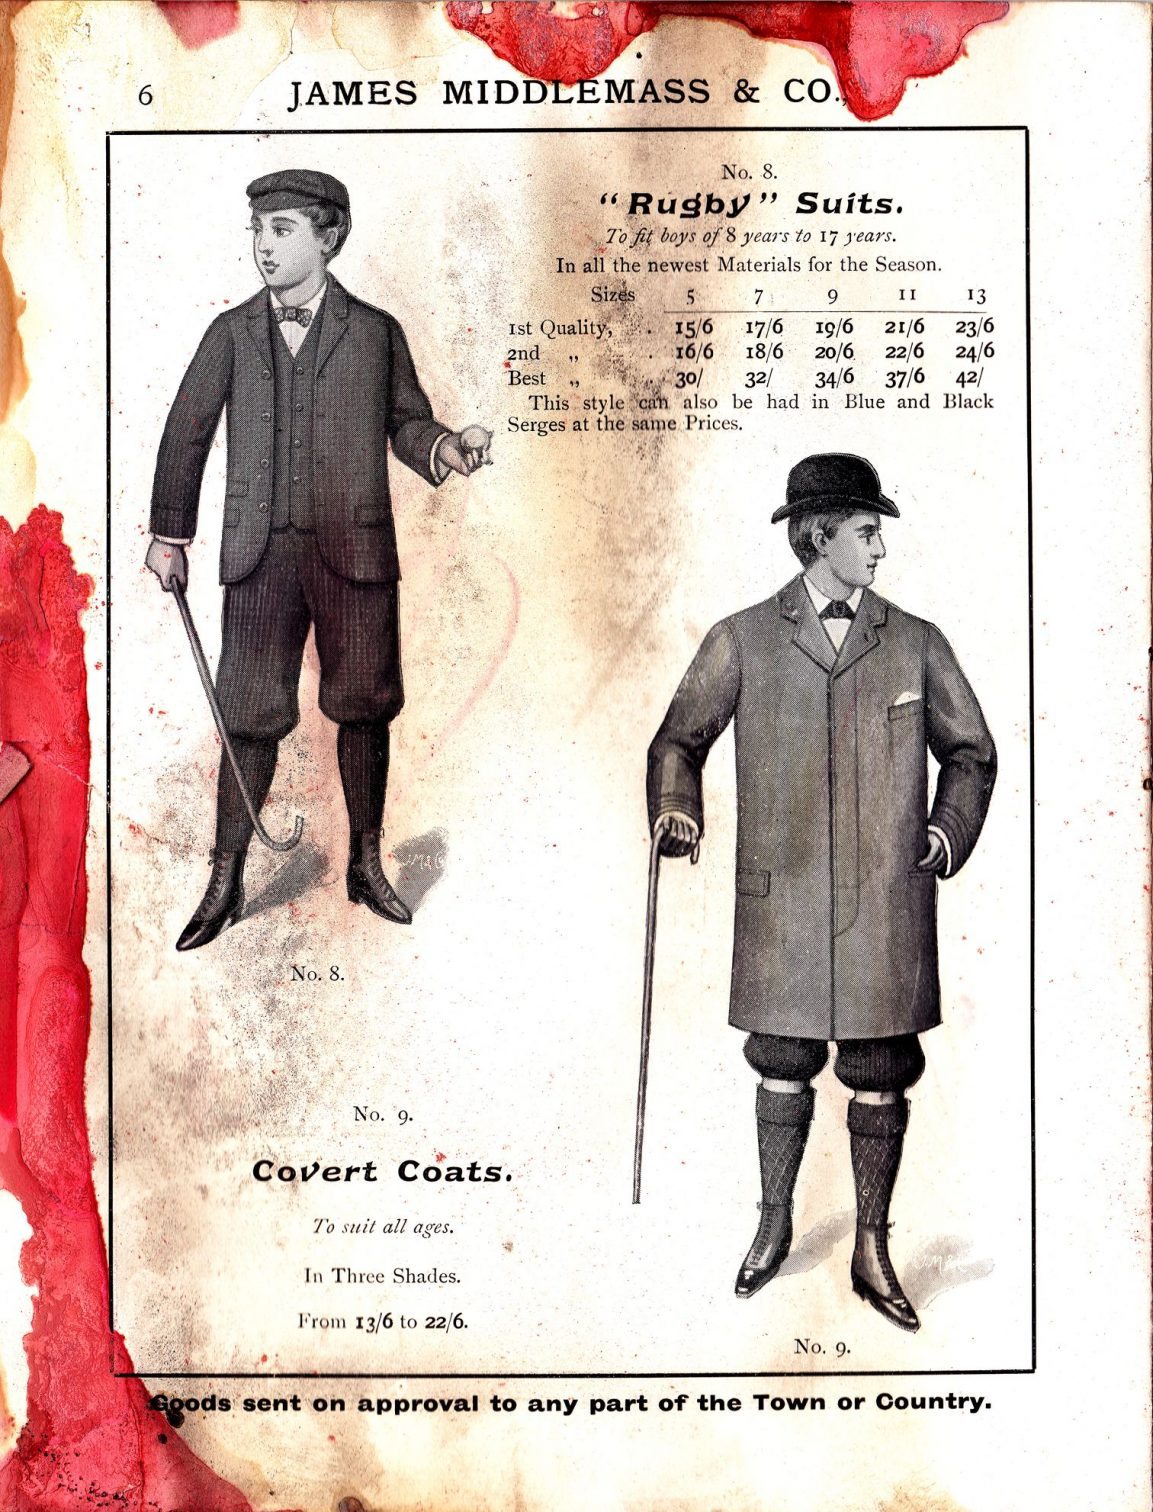 """Rugby"" Suits and Covert Coats"